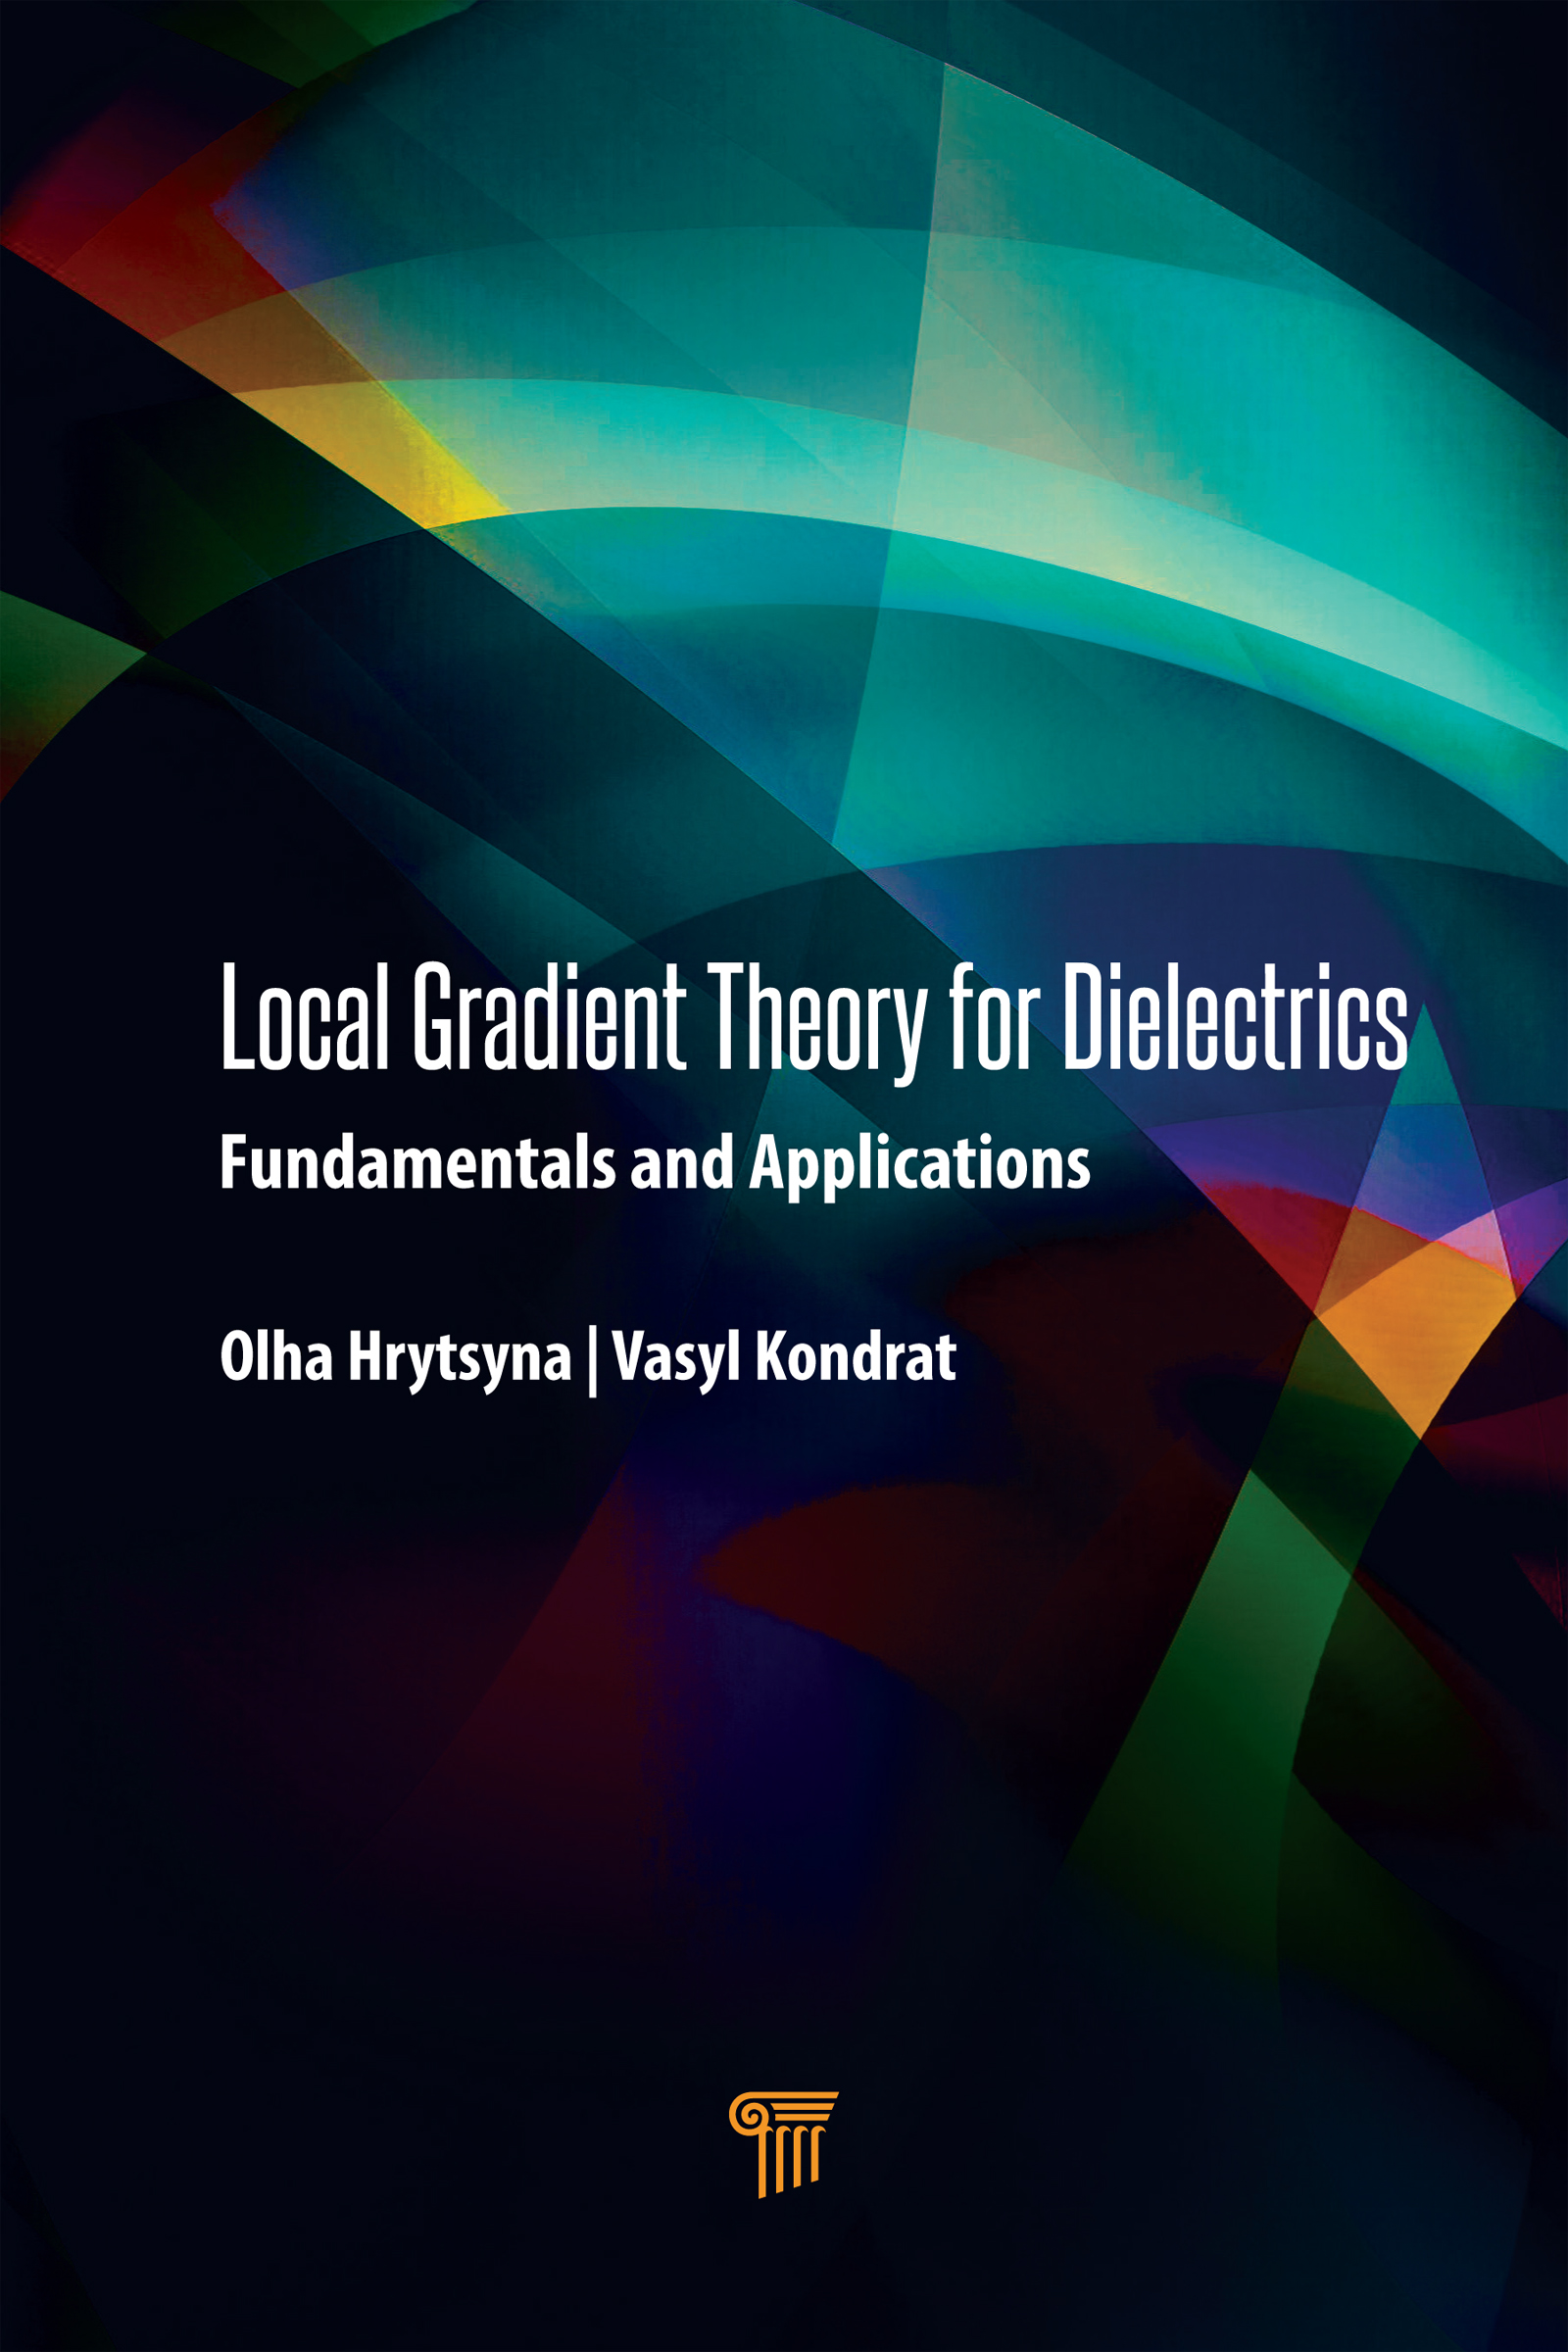 Local Gradient Theory for Dielectrics: Fundamentals and Applications book cover